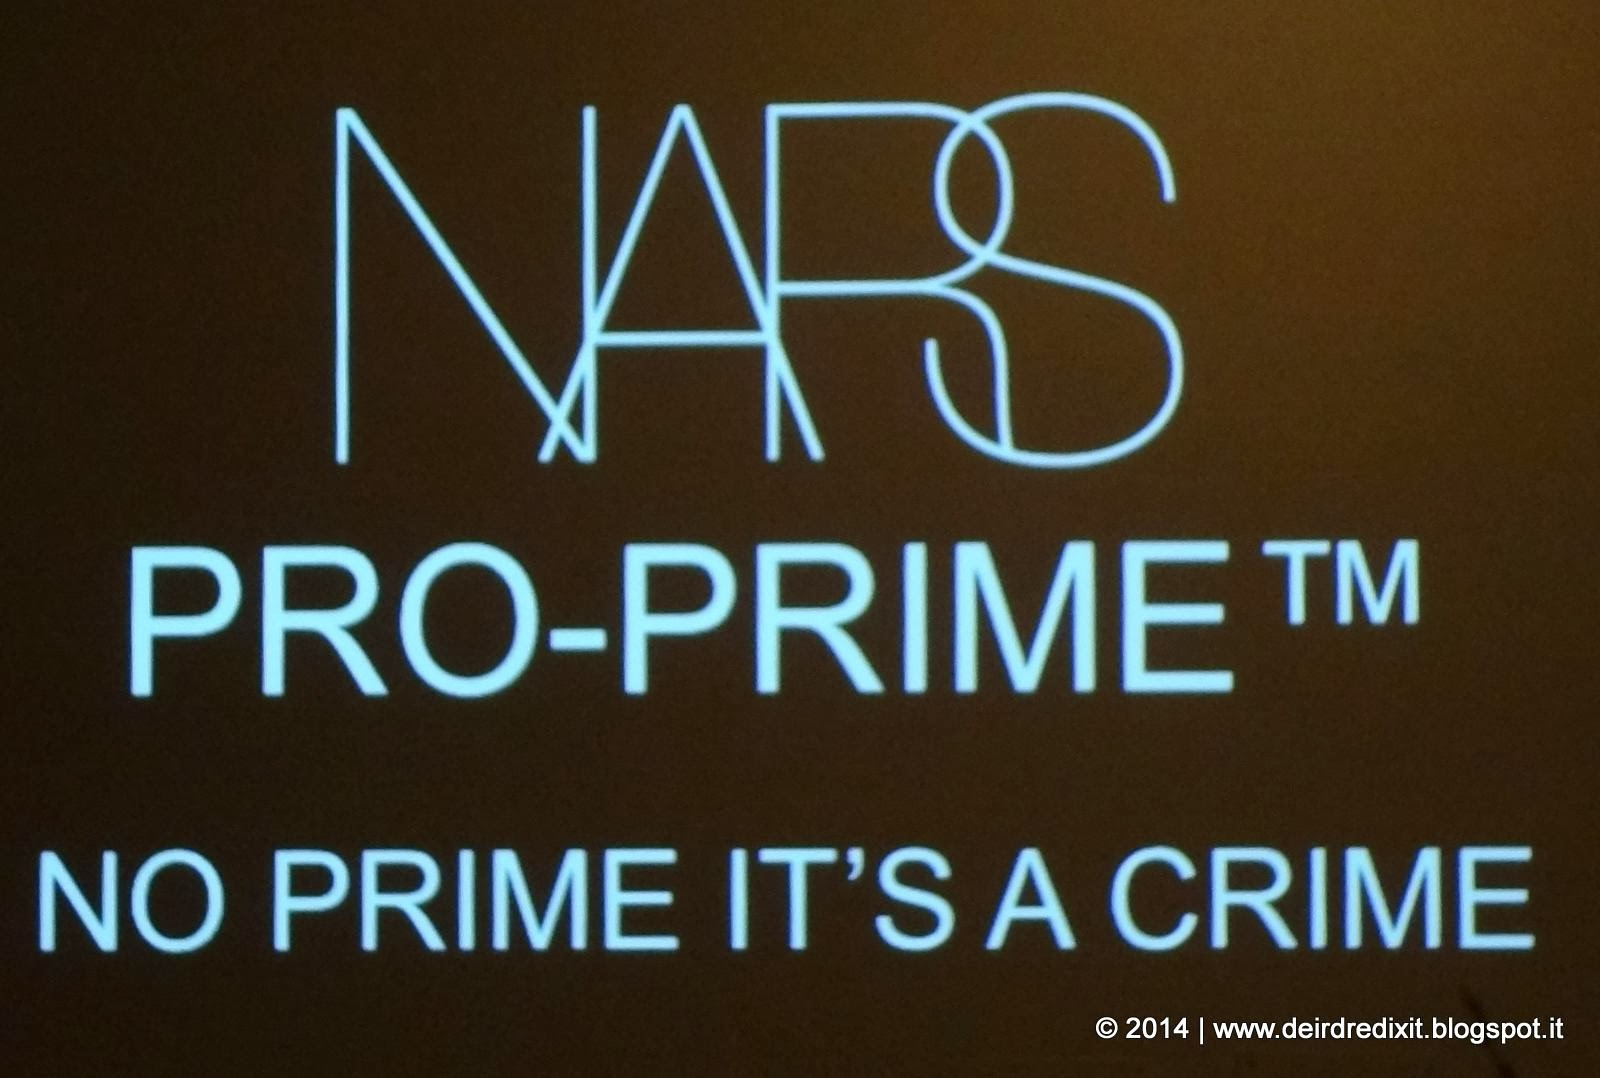 No prime it's a crime